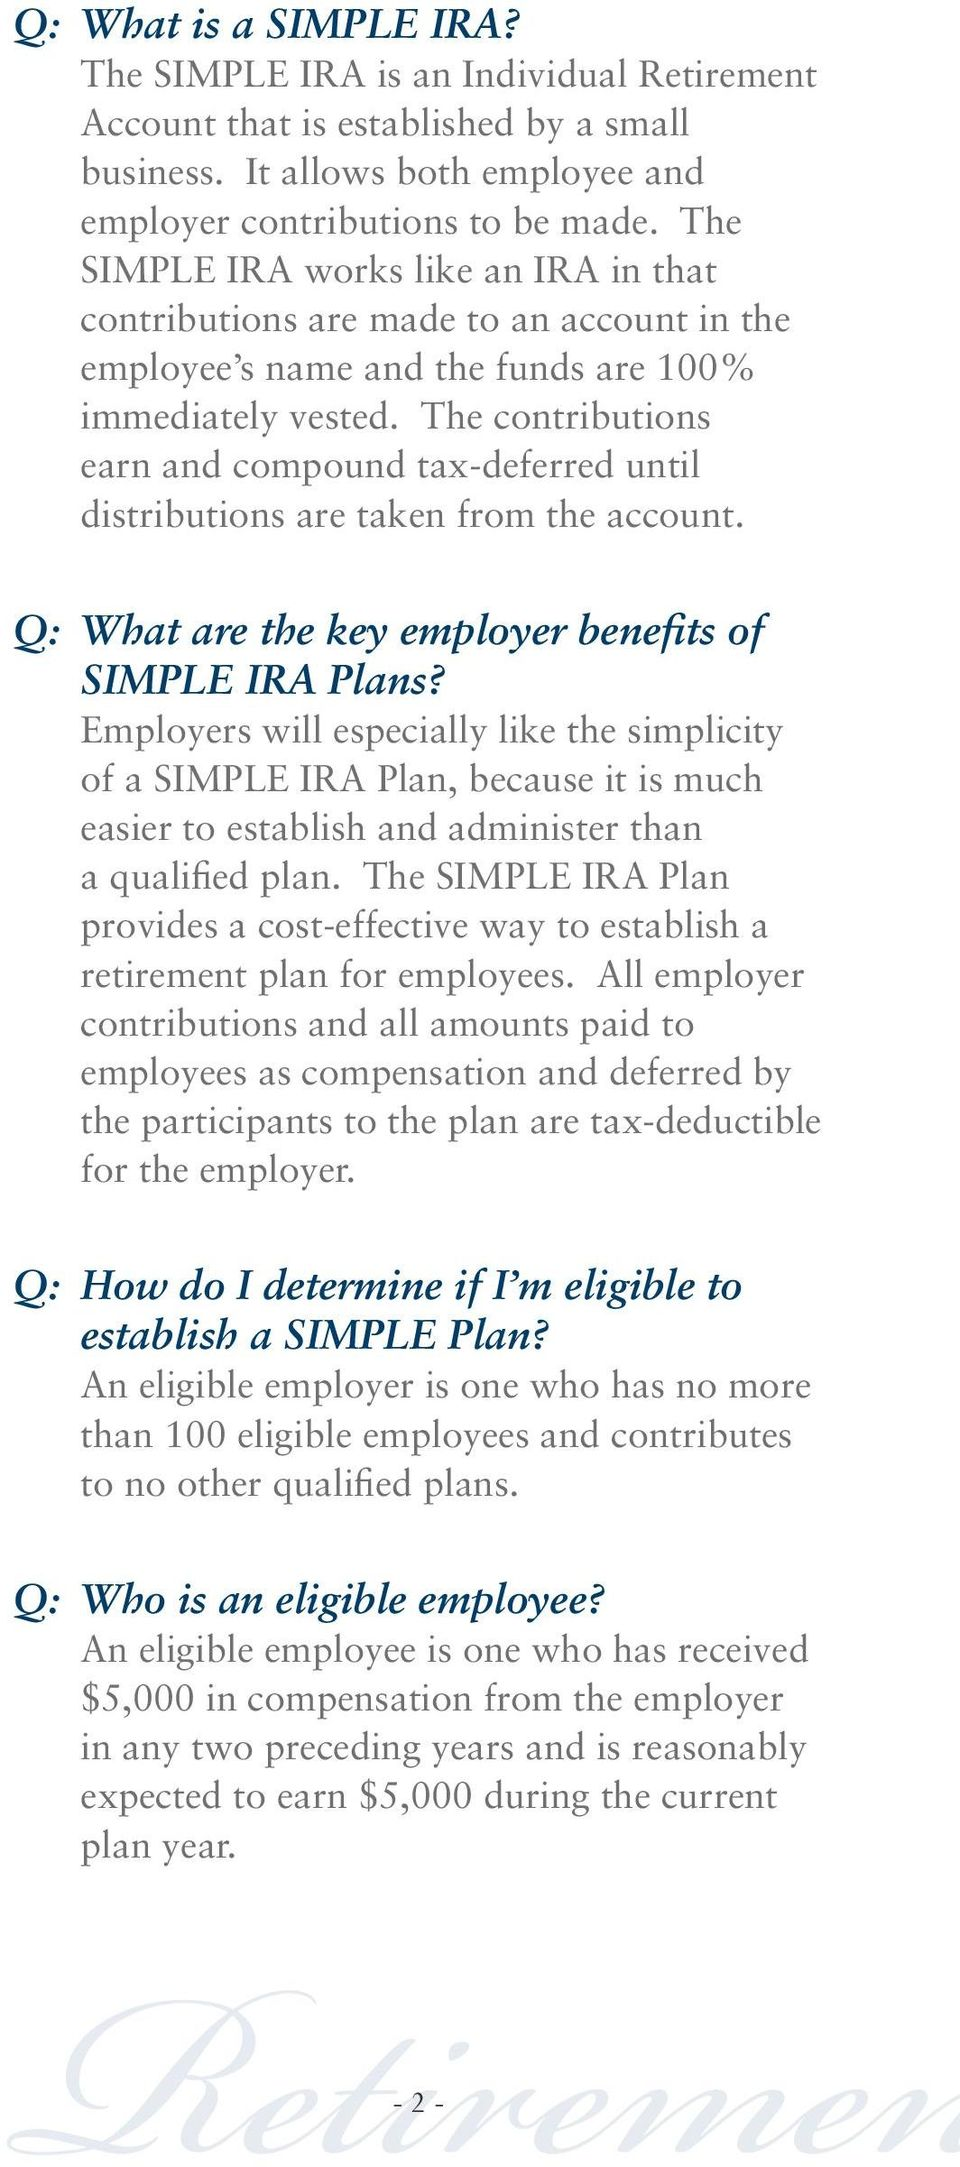 The contributions earn and compound tax-deferred until distributions are taken from the account. Q: What are the key employer benefits of SIMPLE IRA Plans?